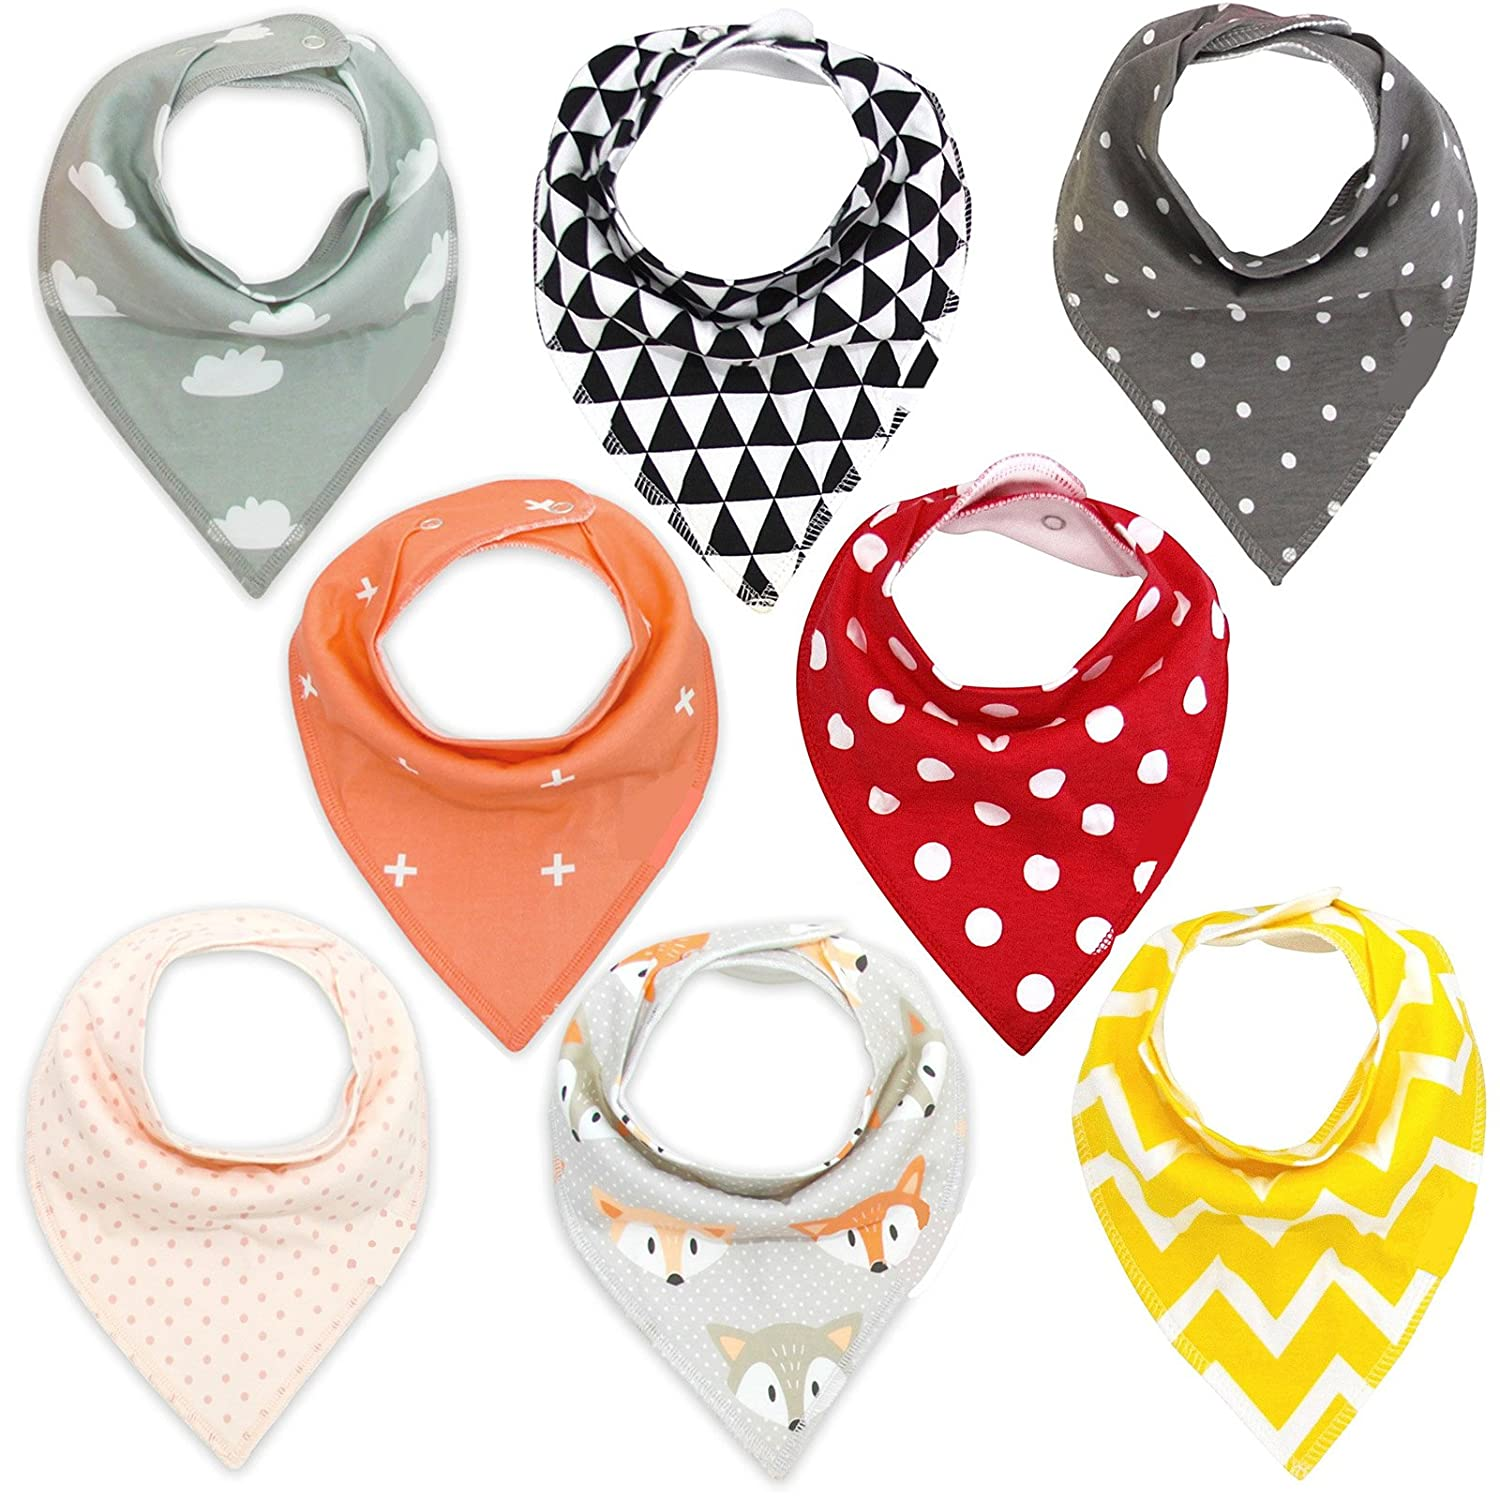 Baby Bandana Drool Bibs, Soft Pure Cotton Unisex 8 - Group #2 Accessory